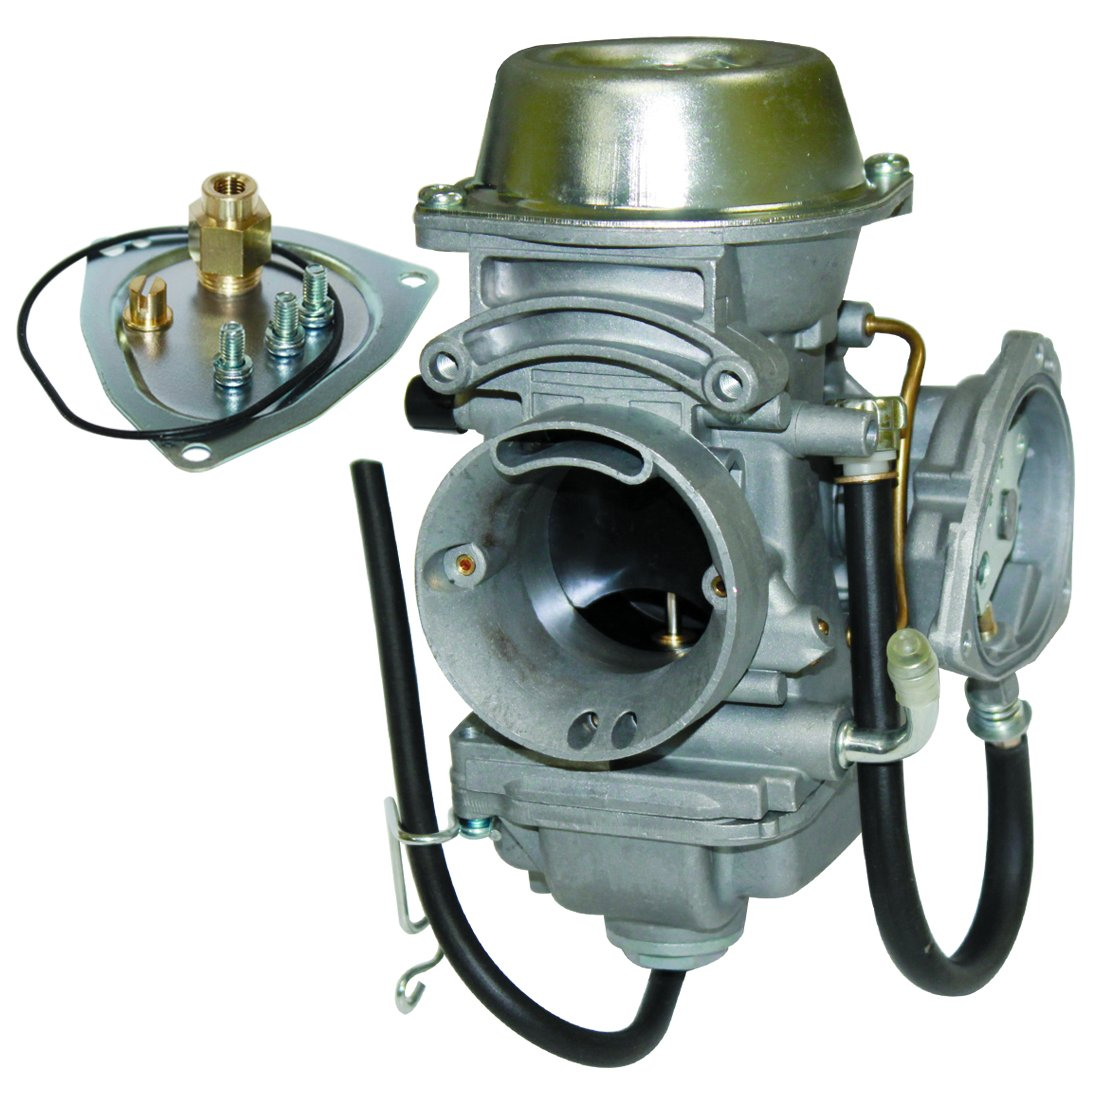 Caltric CARBURETOR Fits POLARIS SPORTSMAN 500 4X4 HO 2001-2005 2010-2012